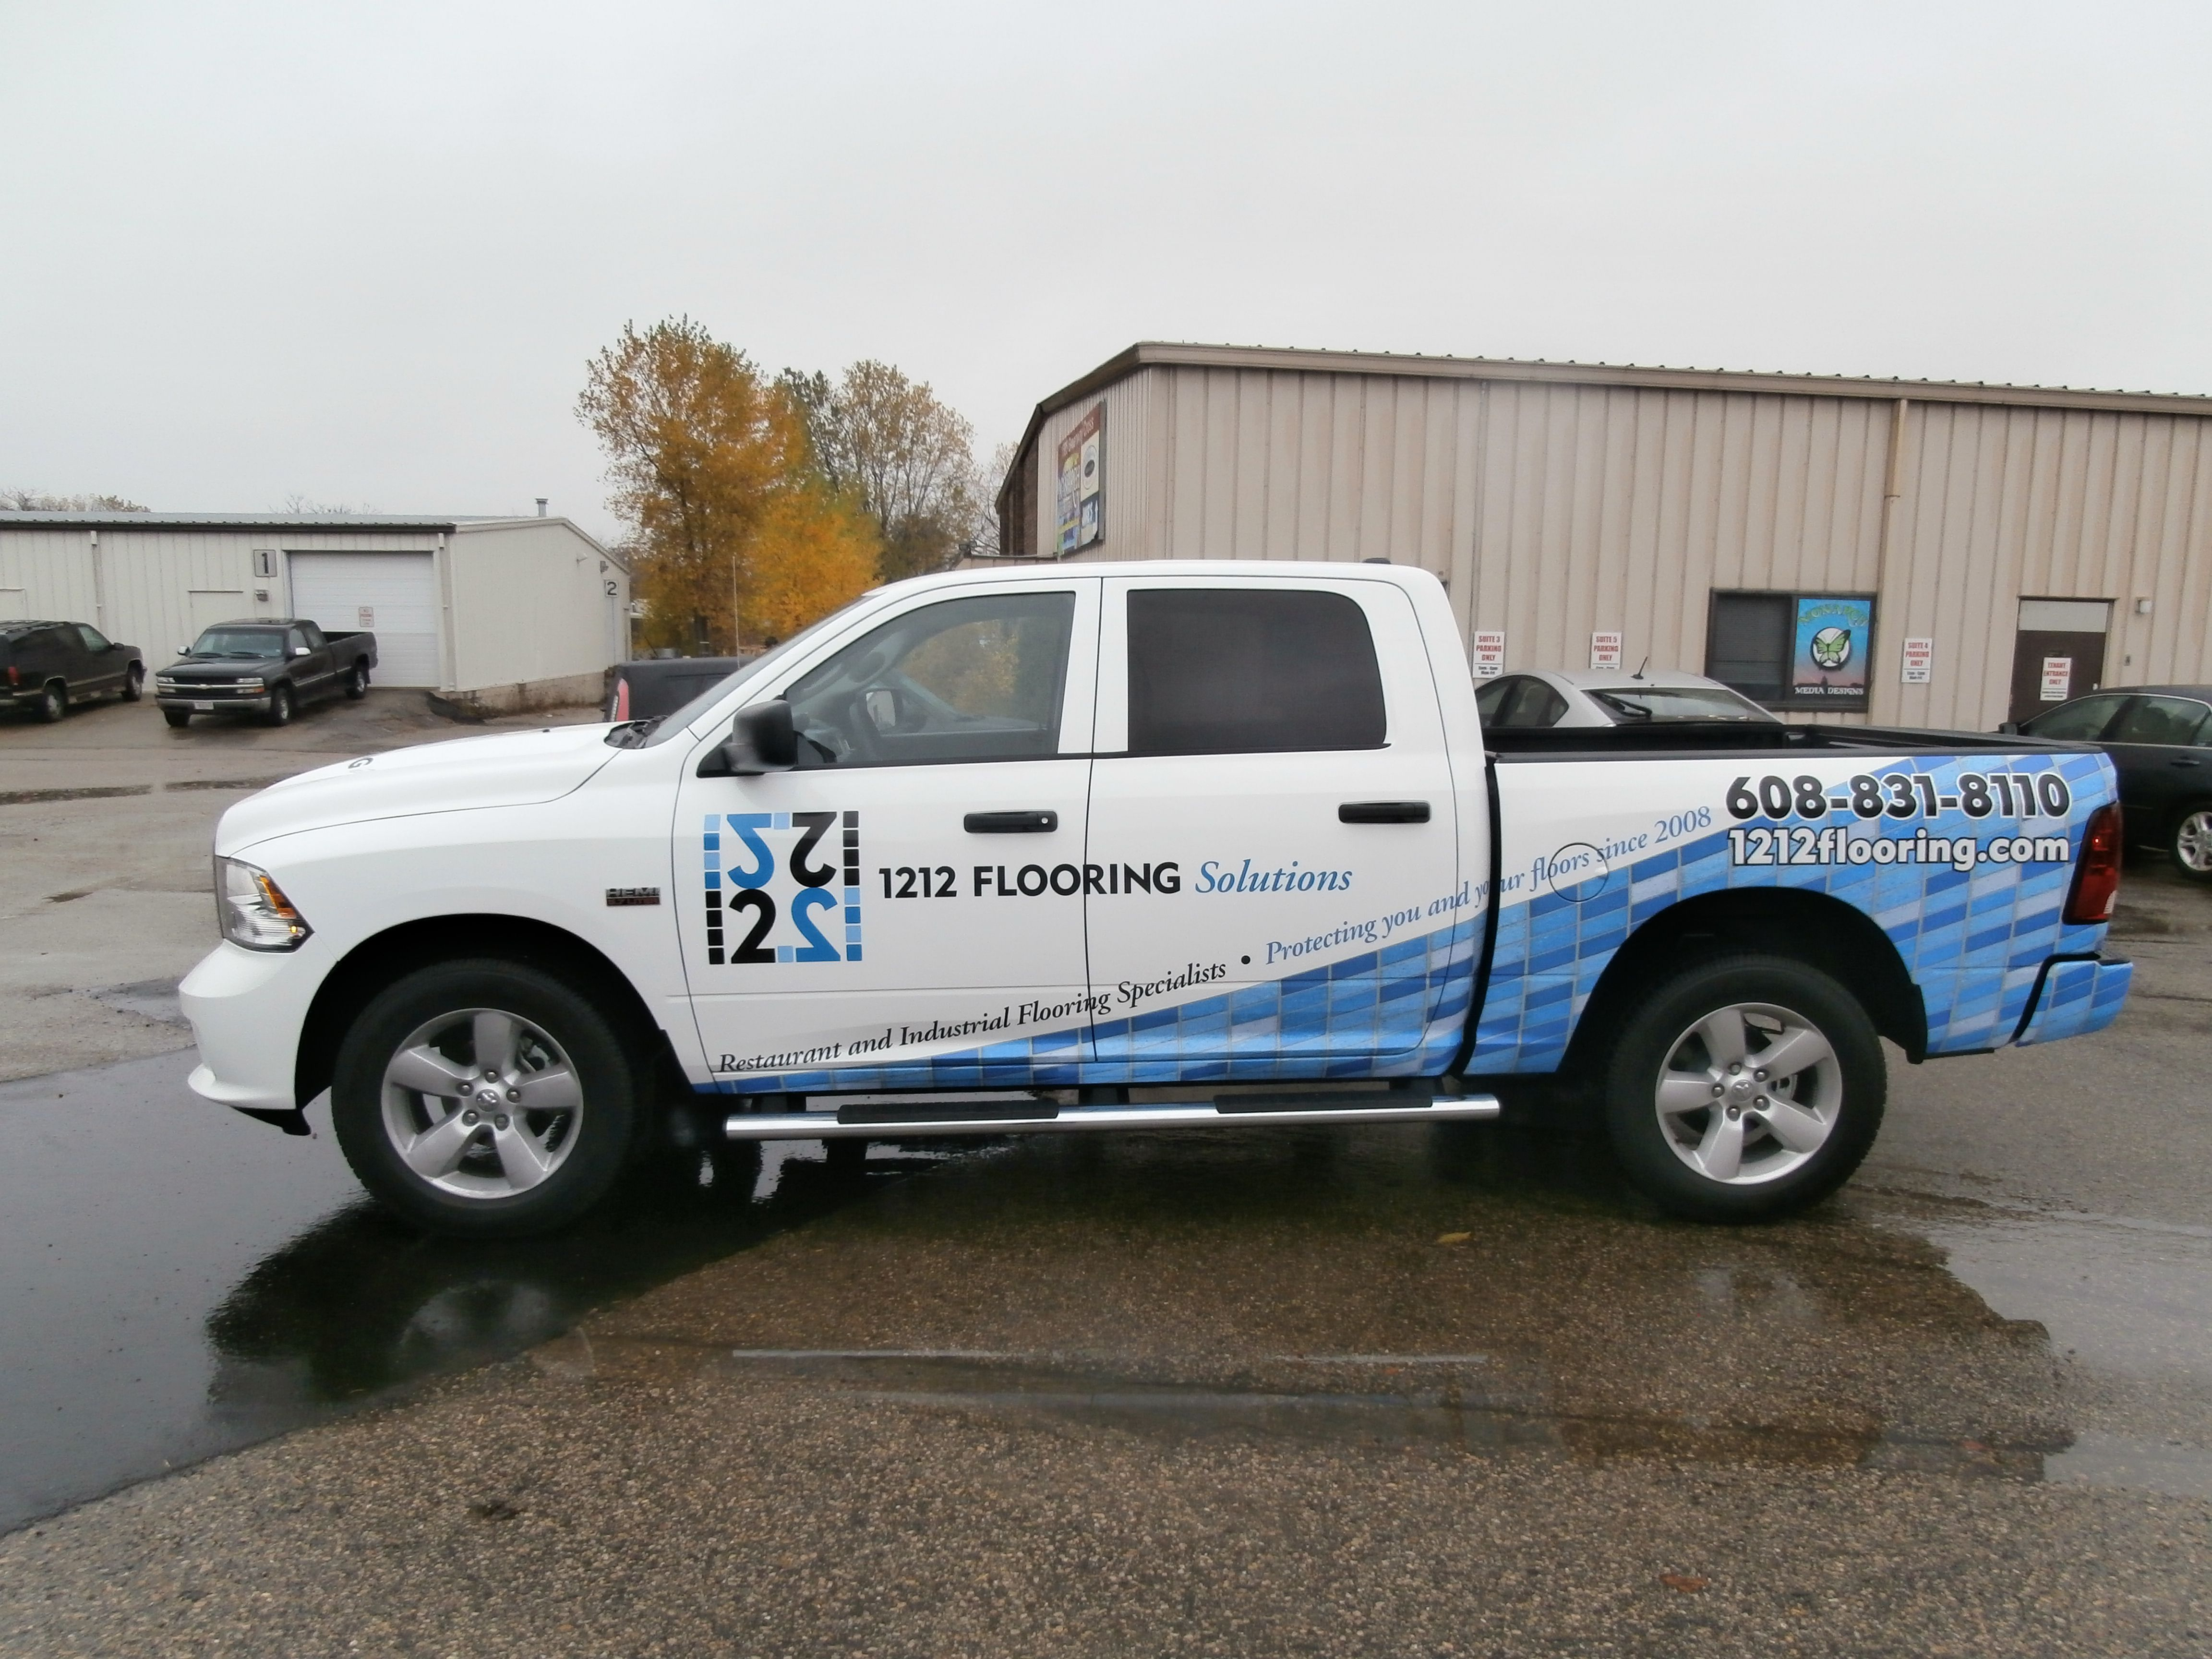 1212 Flooring Truck Graphics Done By Monarch Media Designs In